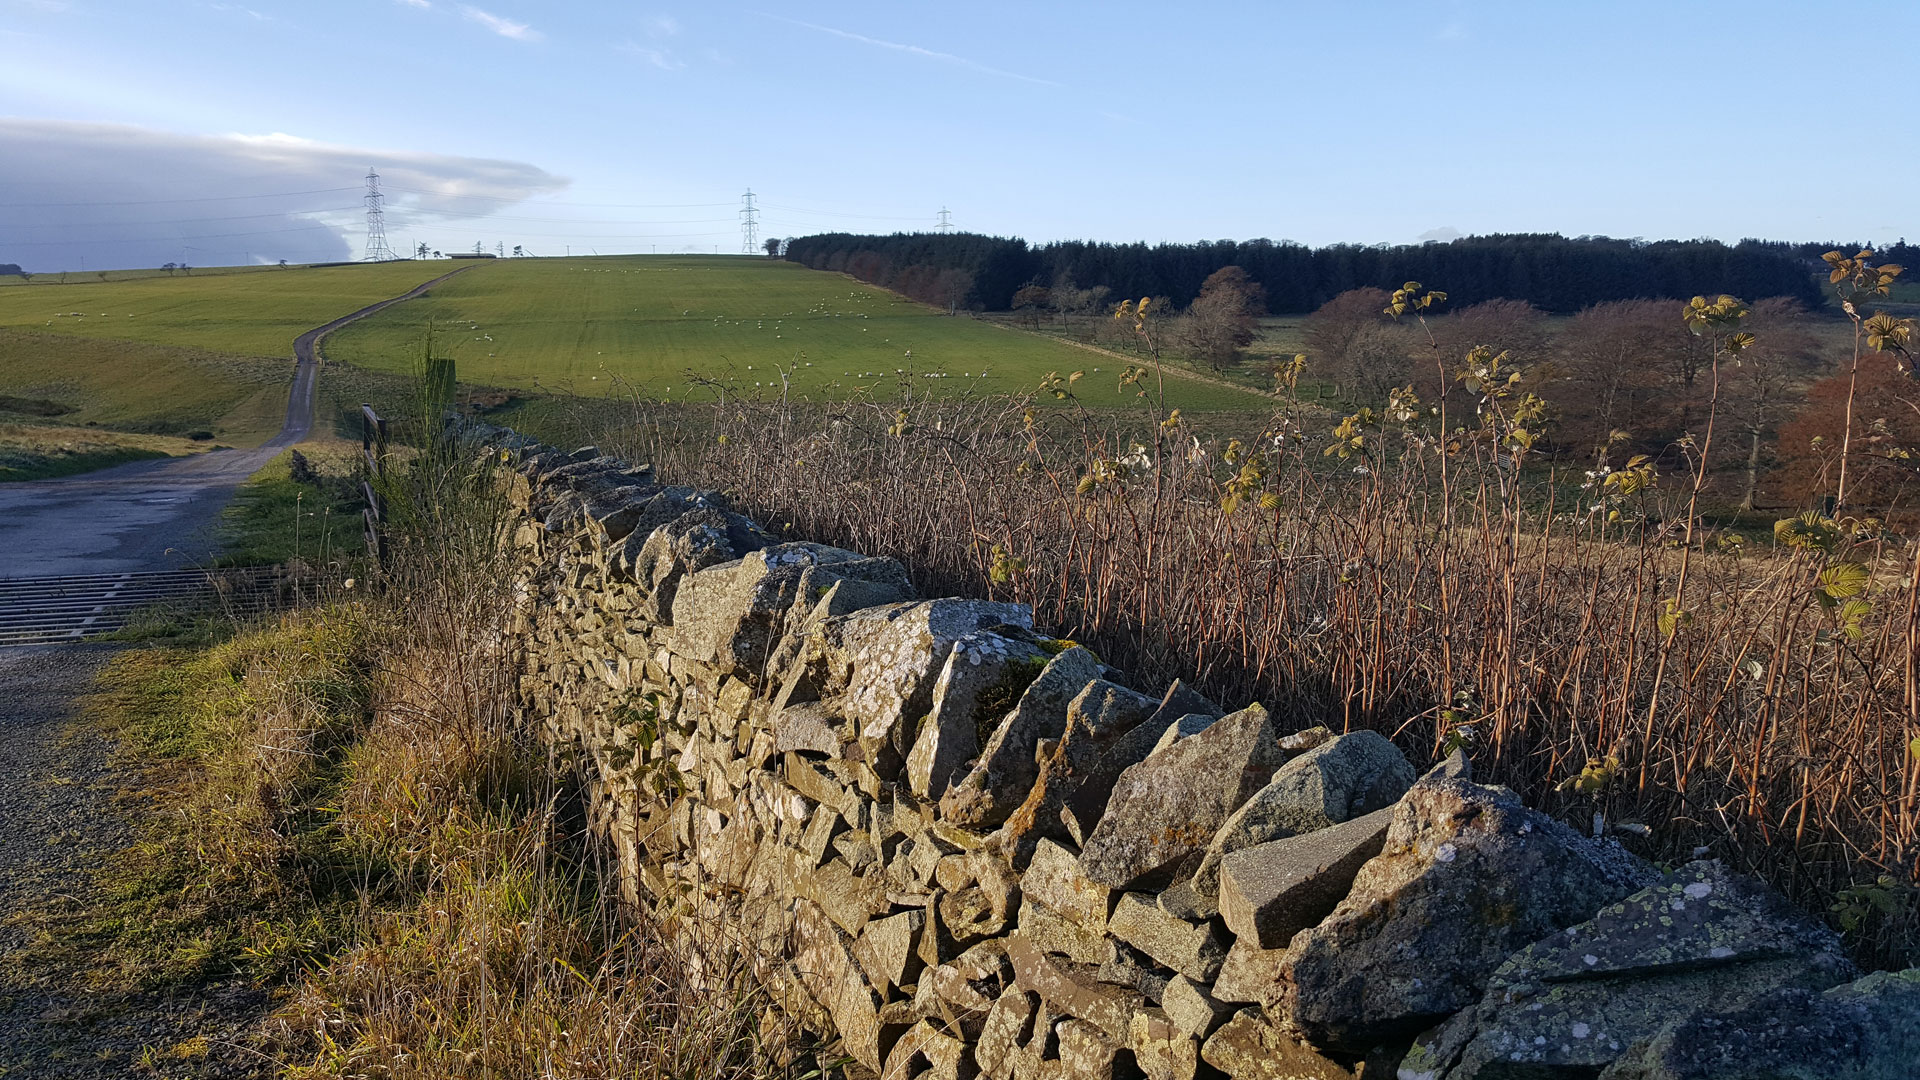 Track road to Airhouses Luxury Lodges in Scottish Borders with beautiful view of fields.